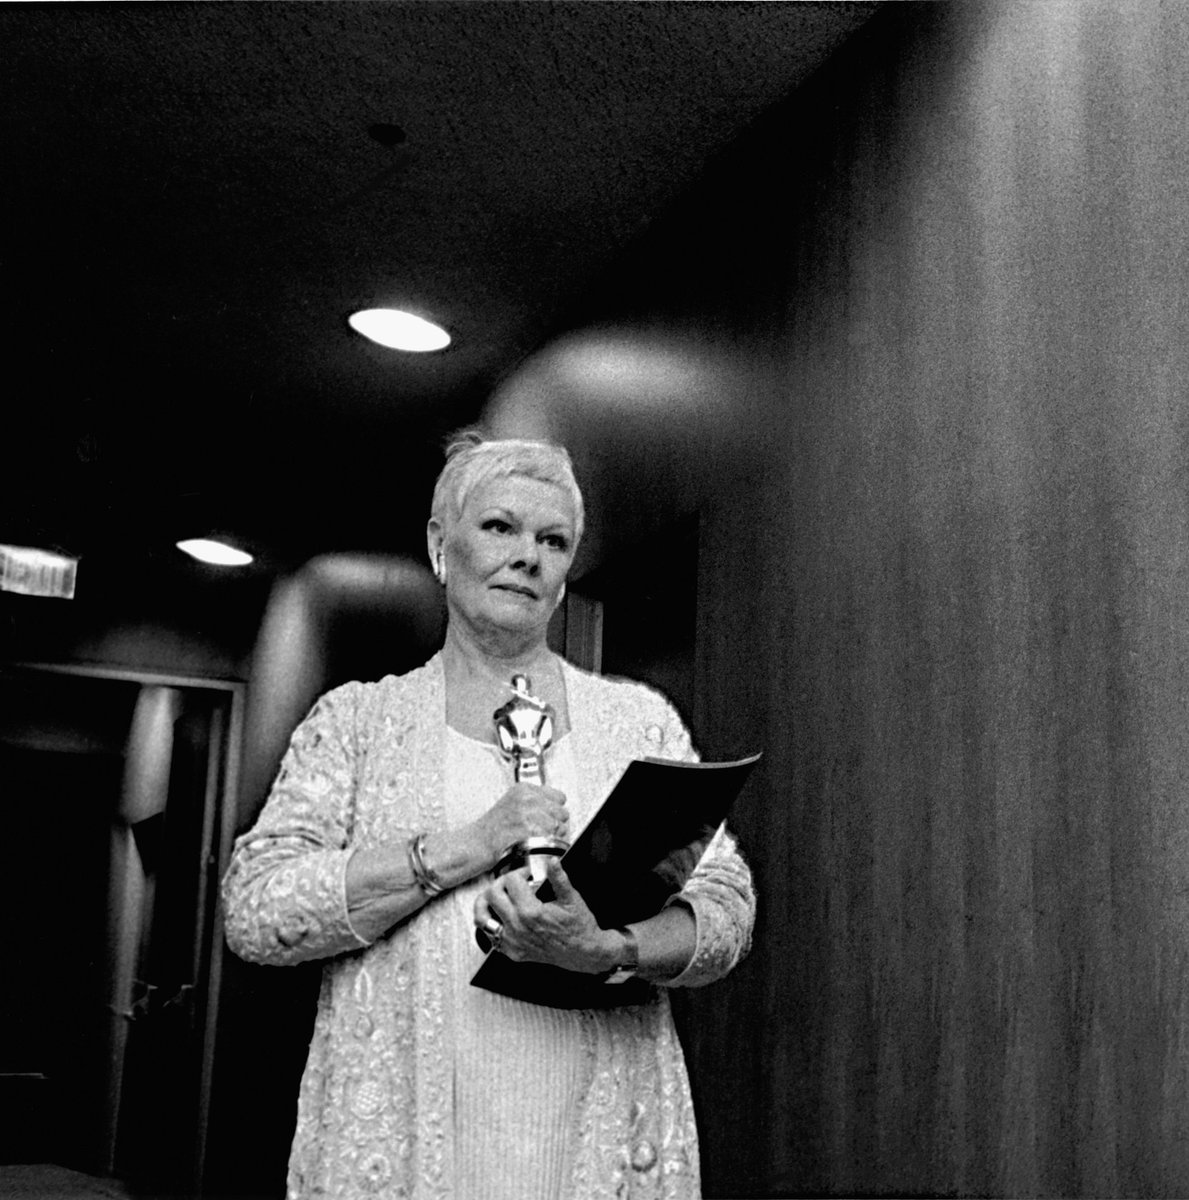 Day 1583 Academy Awards, 1999 Photographer: David Strick #JudDench #AcademyAwards #Oscarspic.twitter.com/E3ZeqcJ9O4